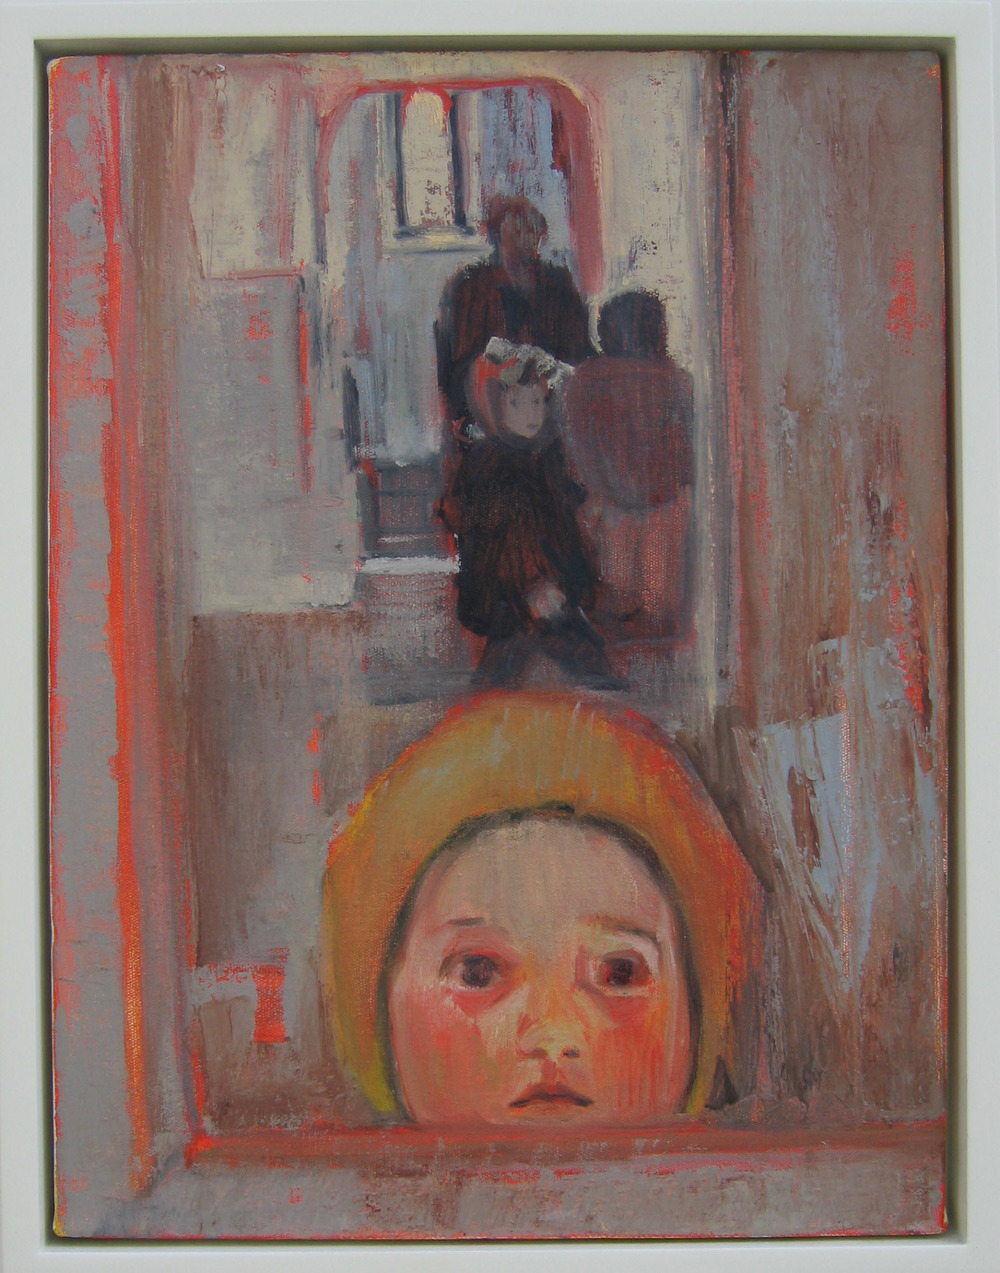 5bg(0) - The Visit, oil,wax on canvas,wood, 23x19 in. 2004.jpg